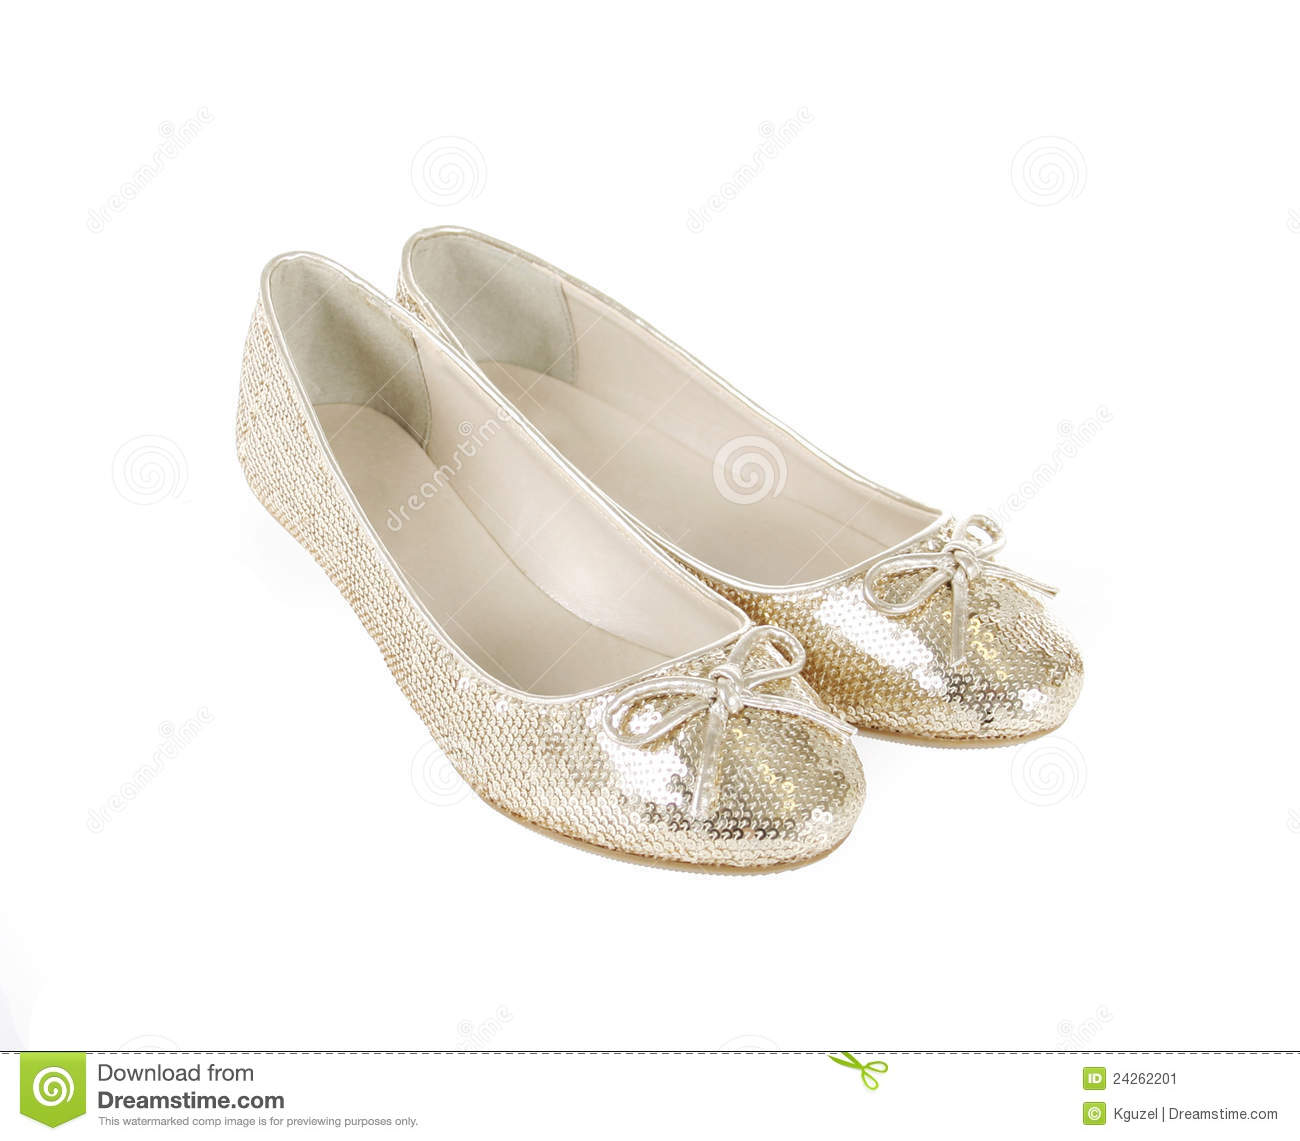 d2874a18cee9 Glitter Gold Flat Shoes Isolated On White Stock Image - Image of ...